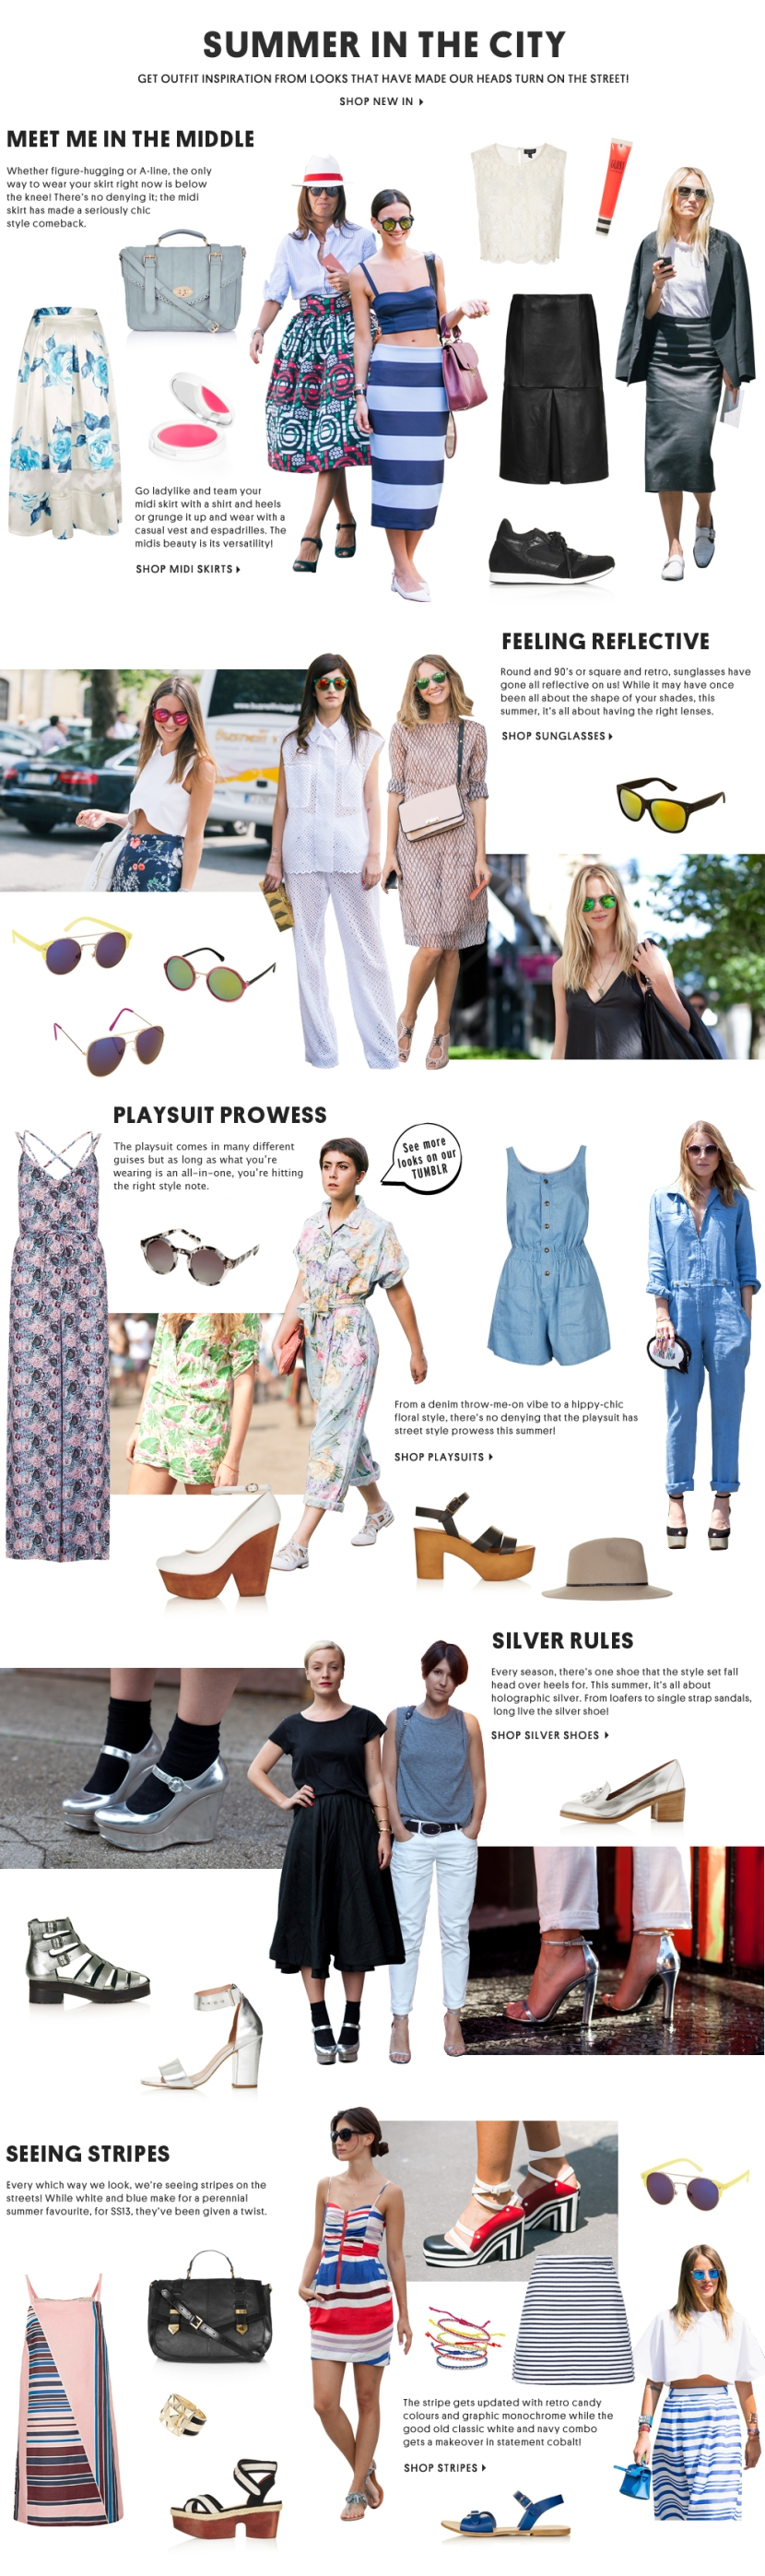 topshop summer style tips